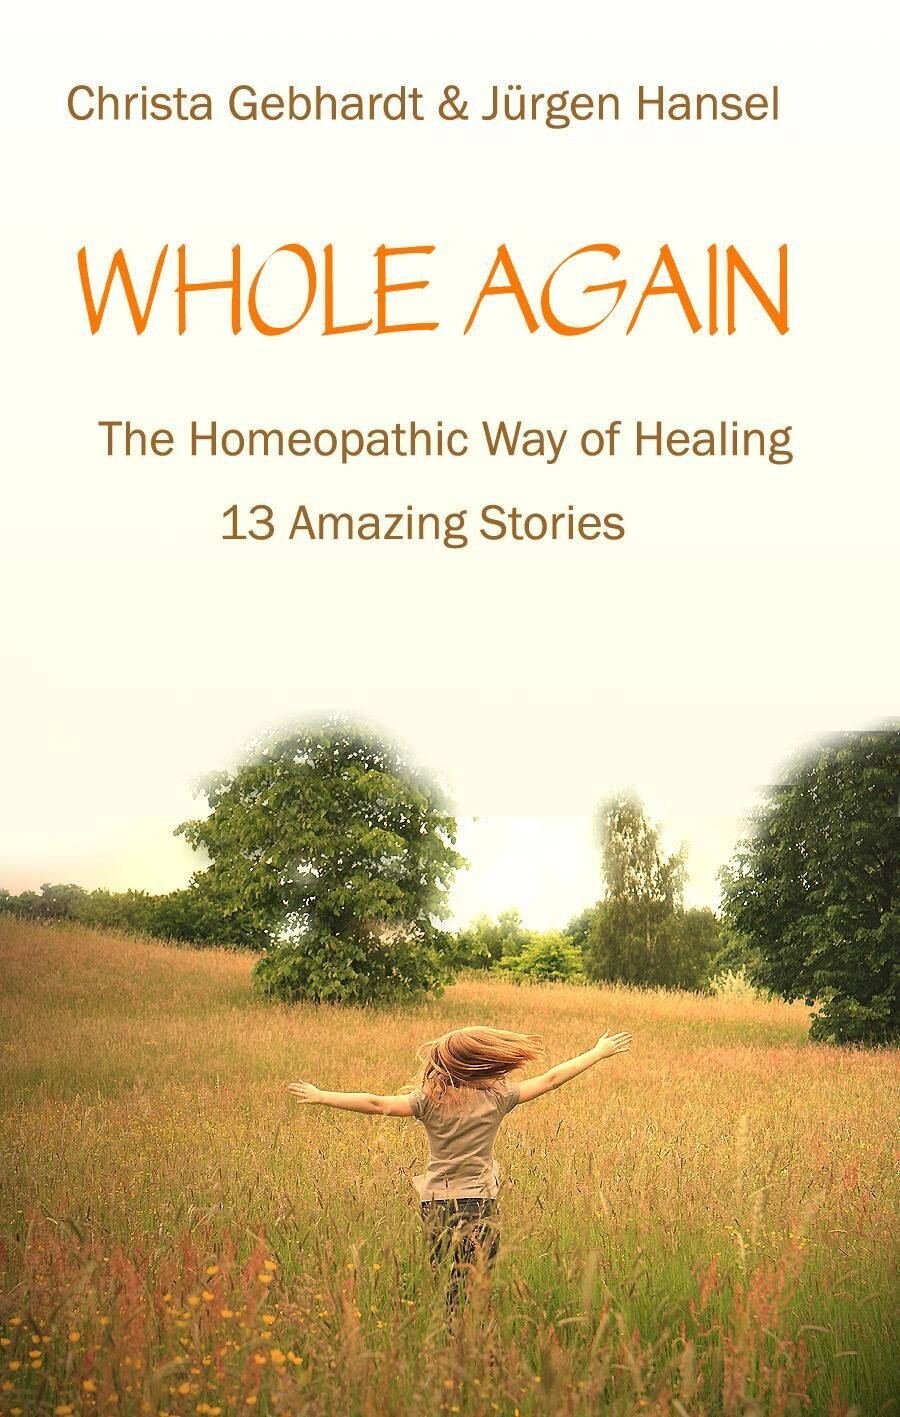 Whole again: The homeopathic way of healing, 13 amazing stories